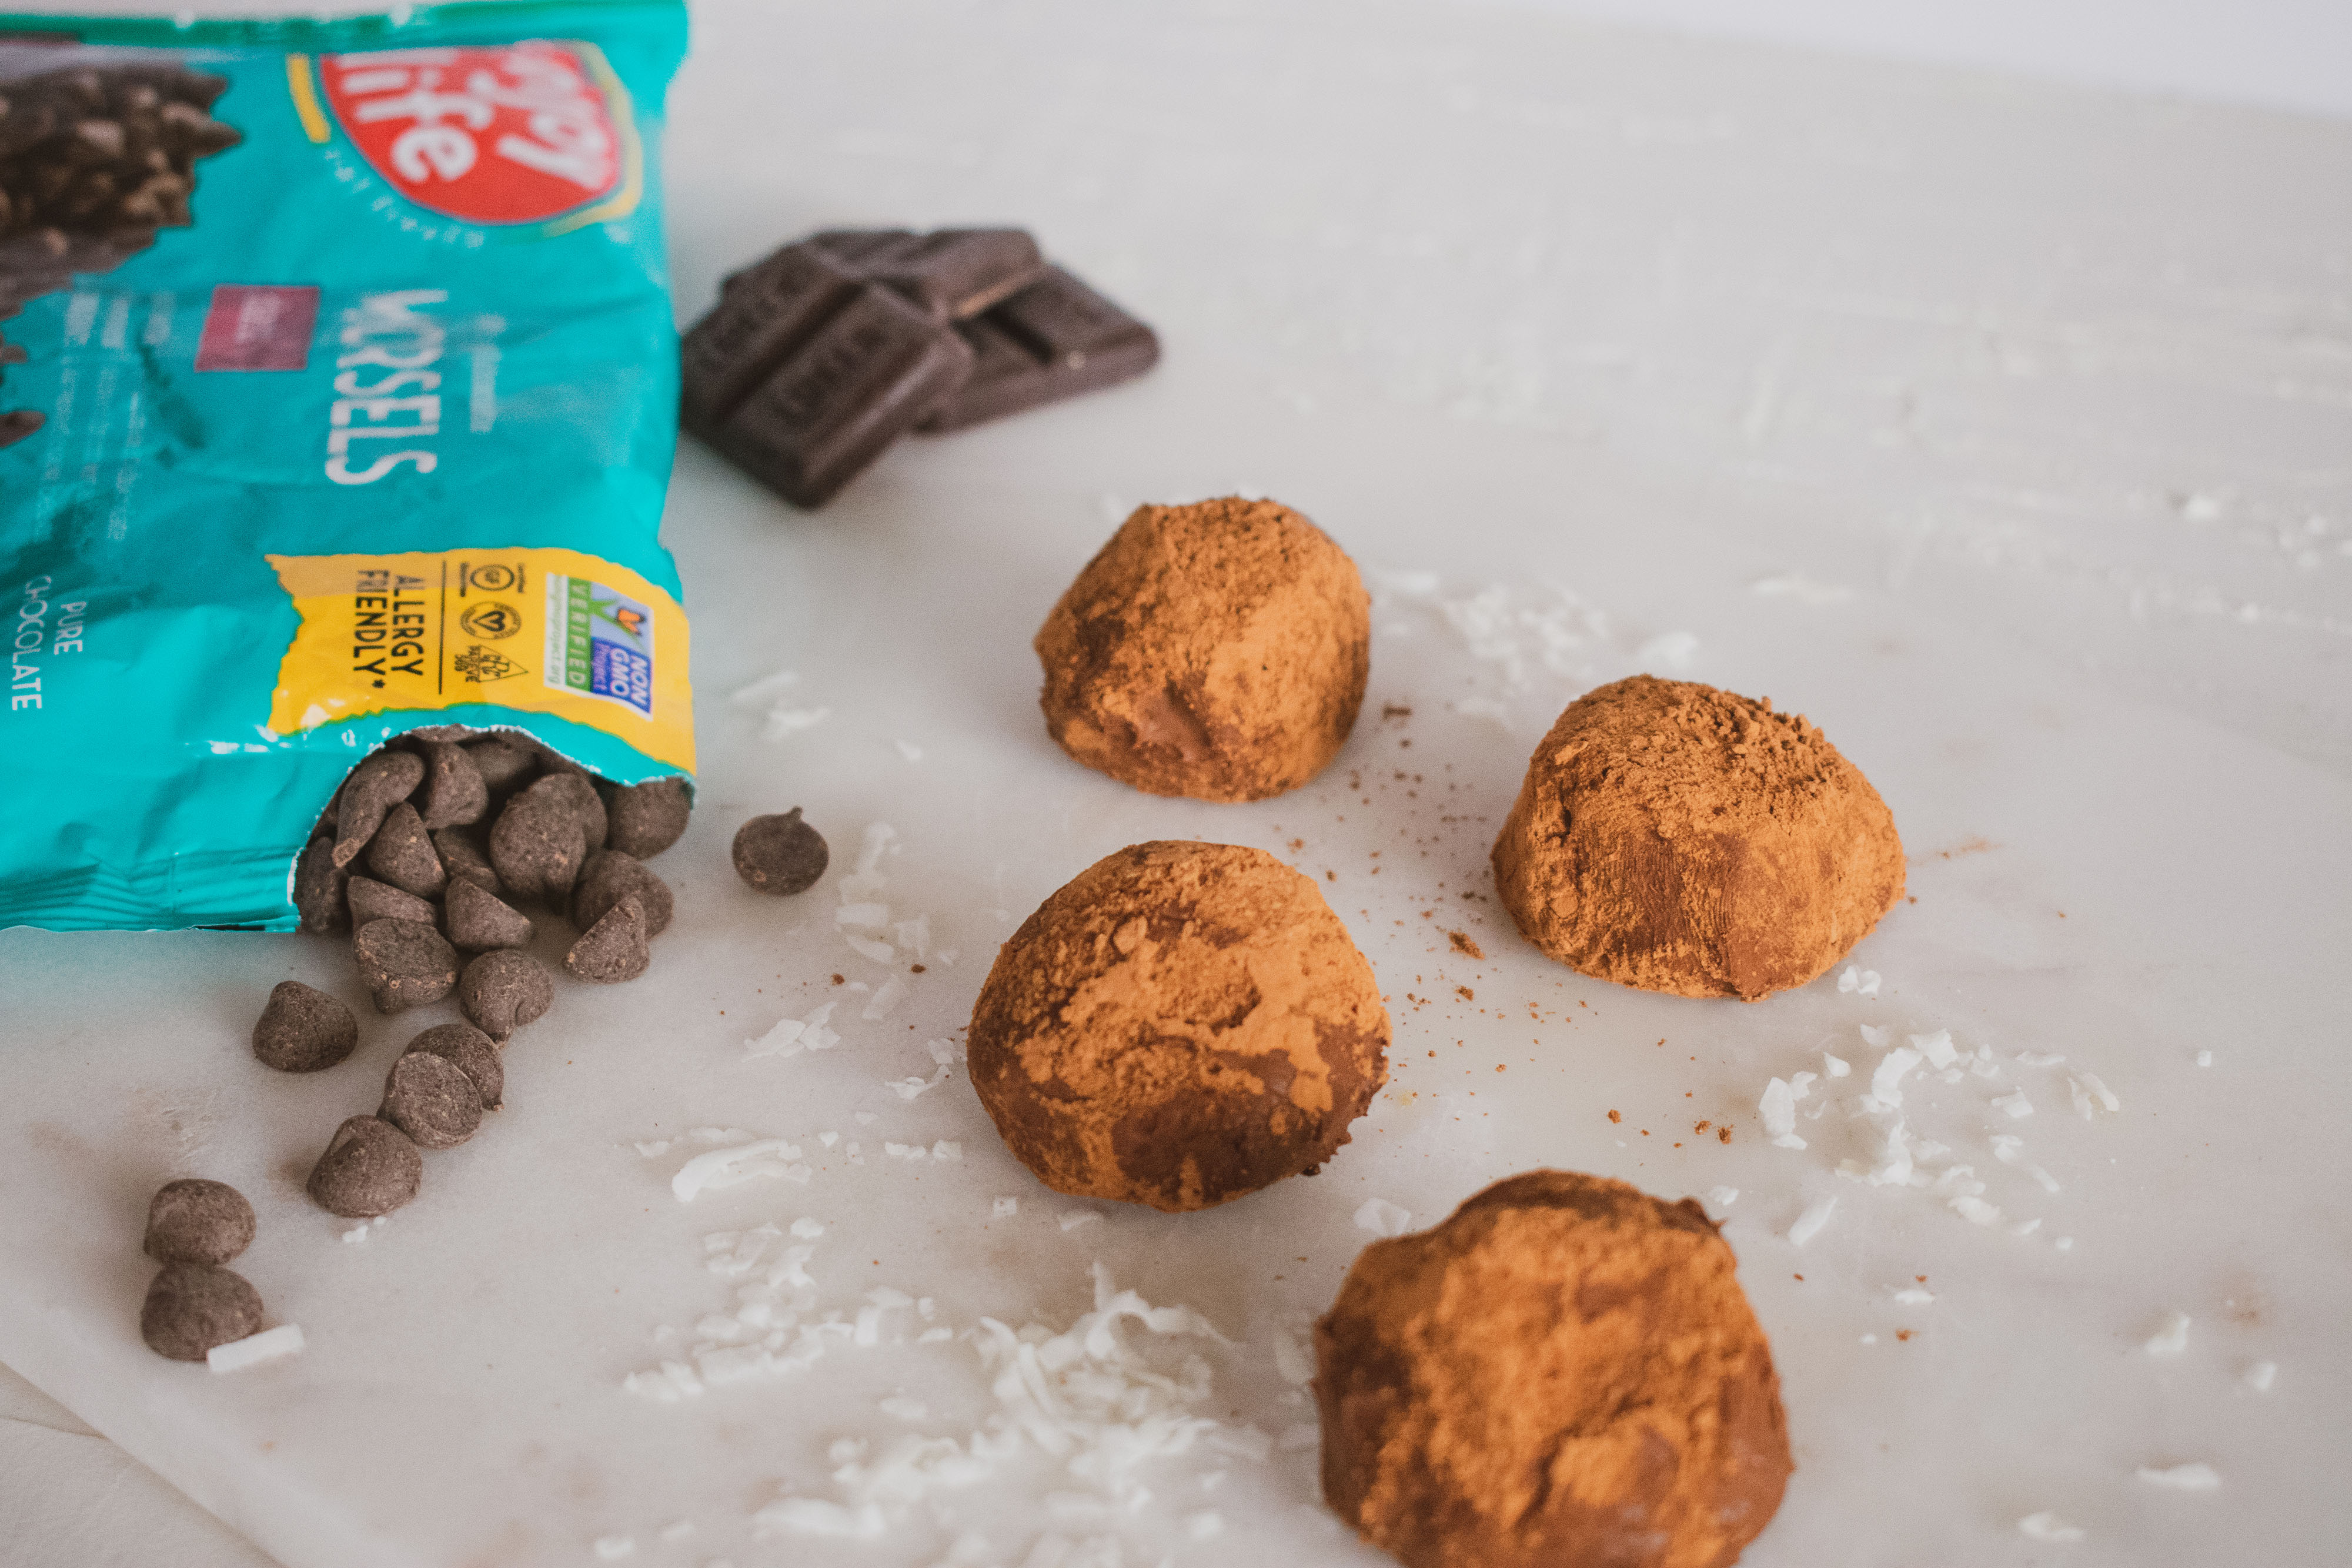 Cocoa powder covered keto chocolate truffles. Set on a white surface with a bag of Enjoy Life in the background.